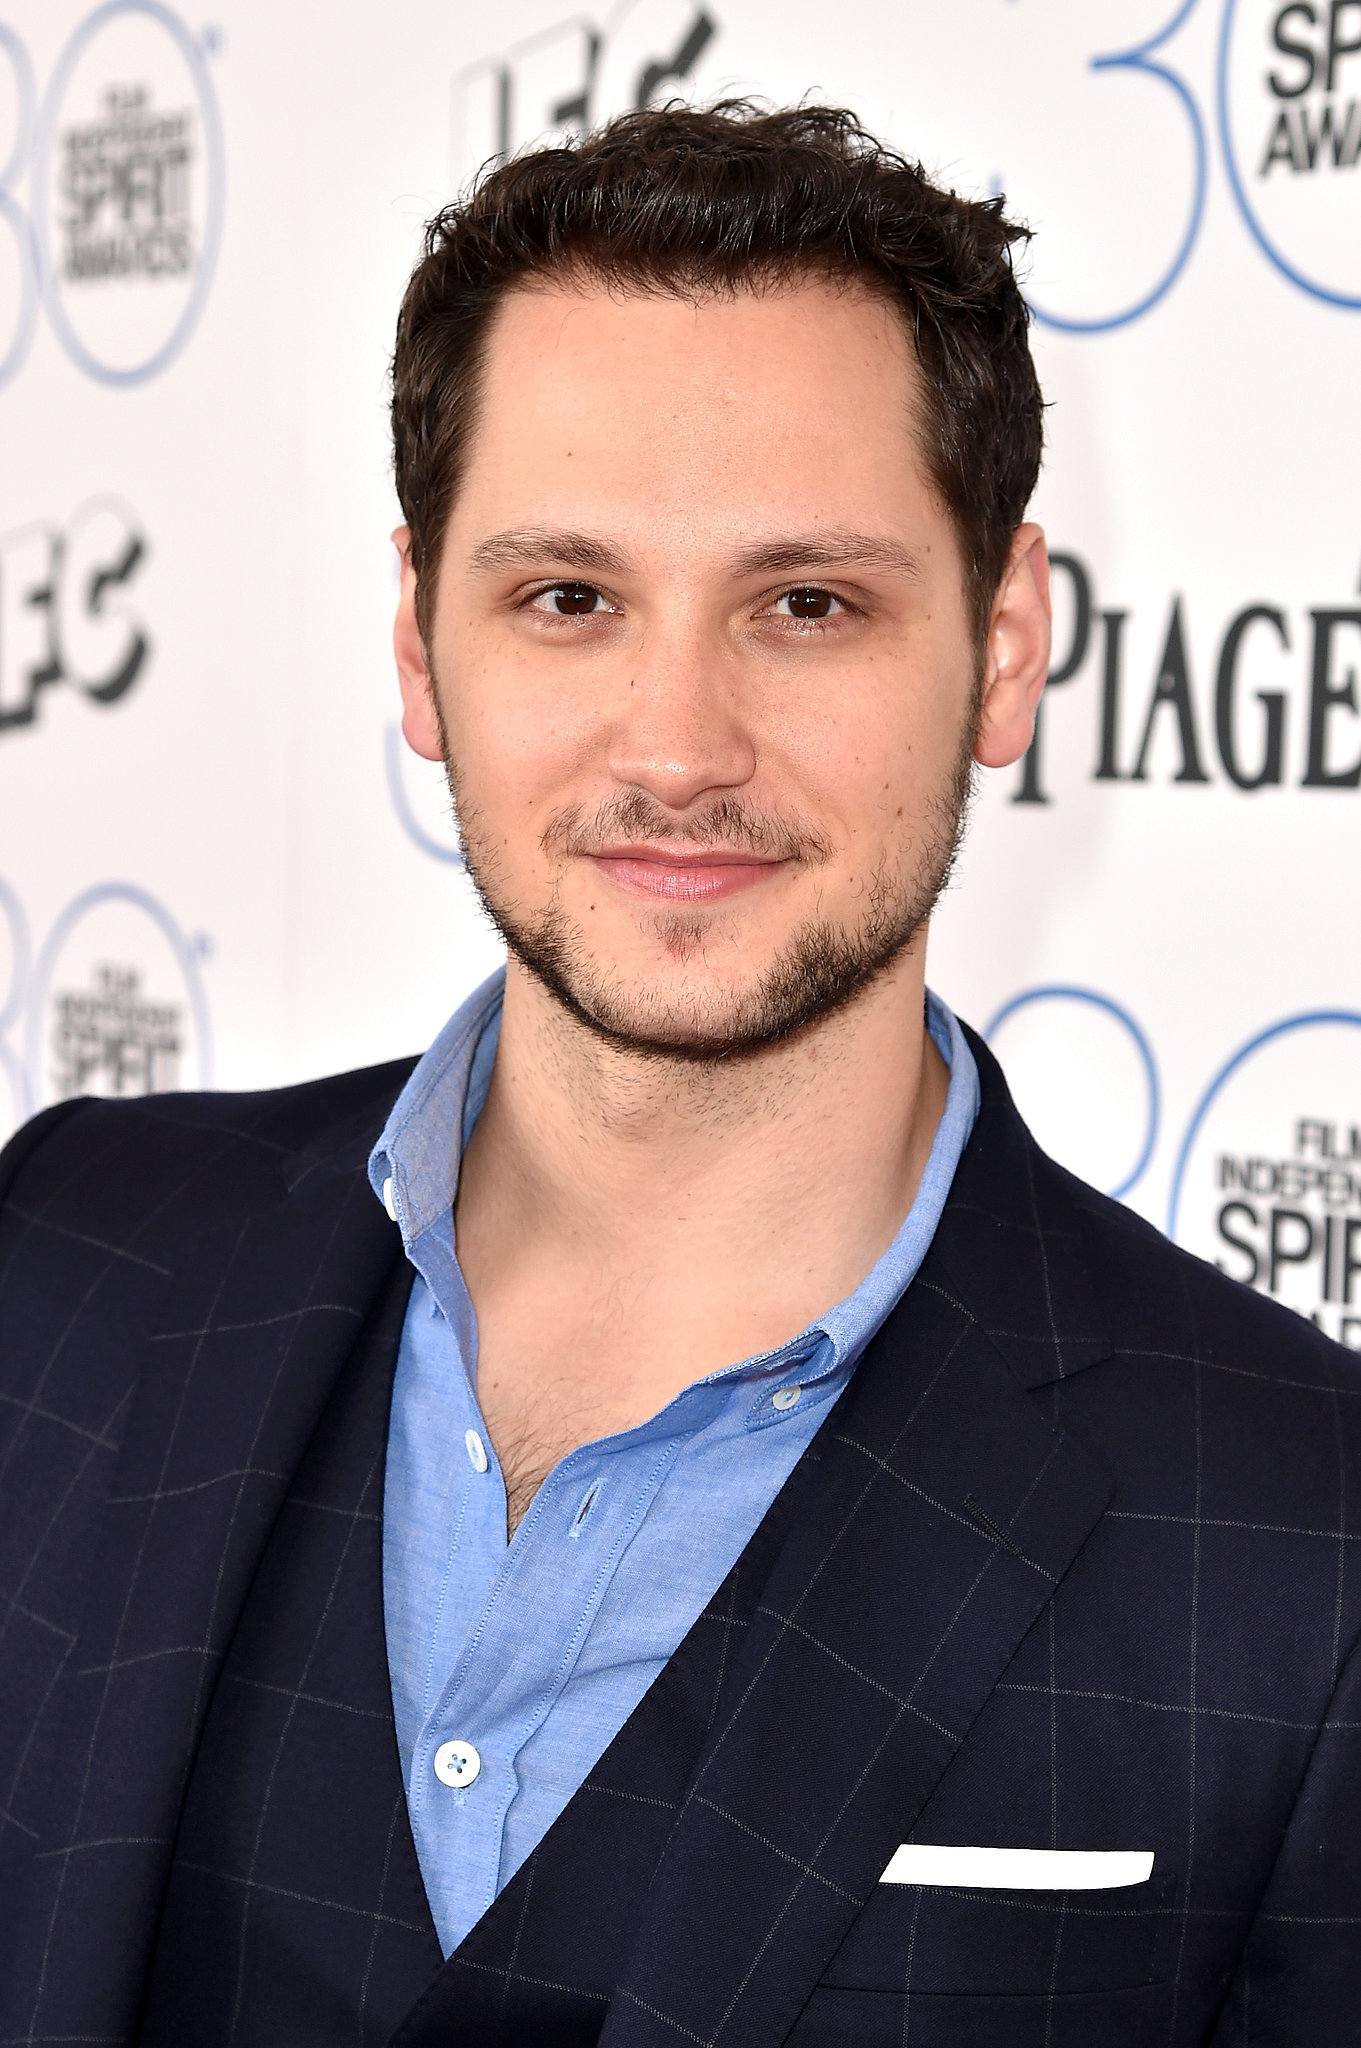 The 31-year old son of father (?) and mother(?), 178 cm tall Matt McGorry in 2018 photo